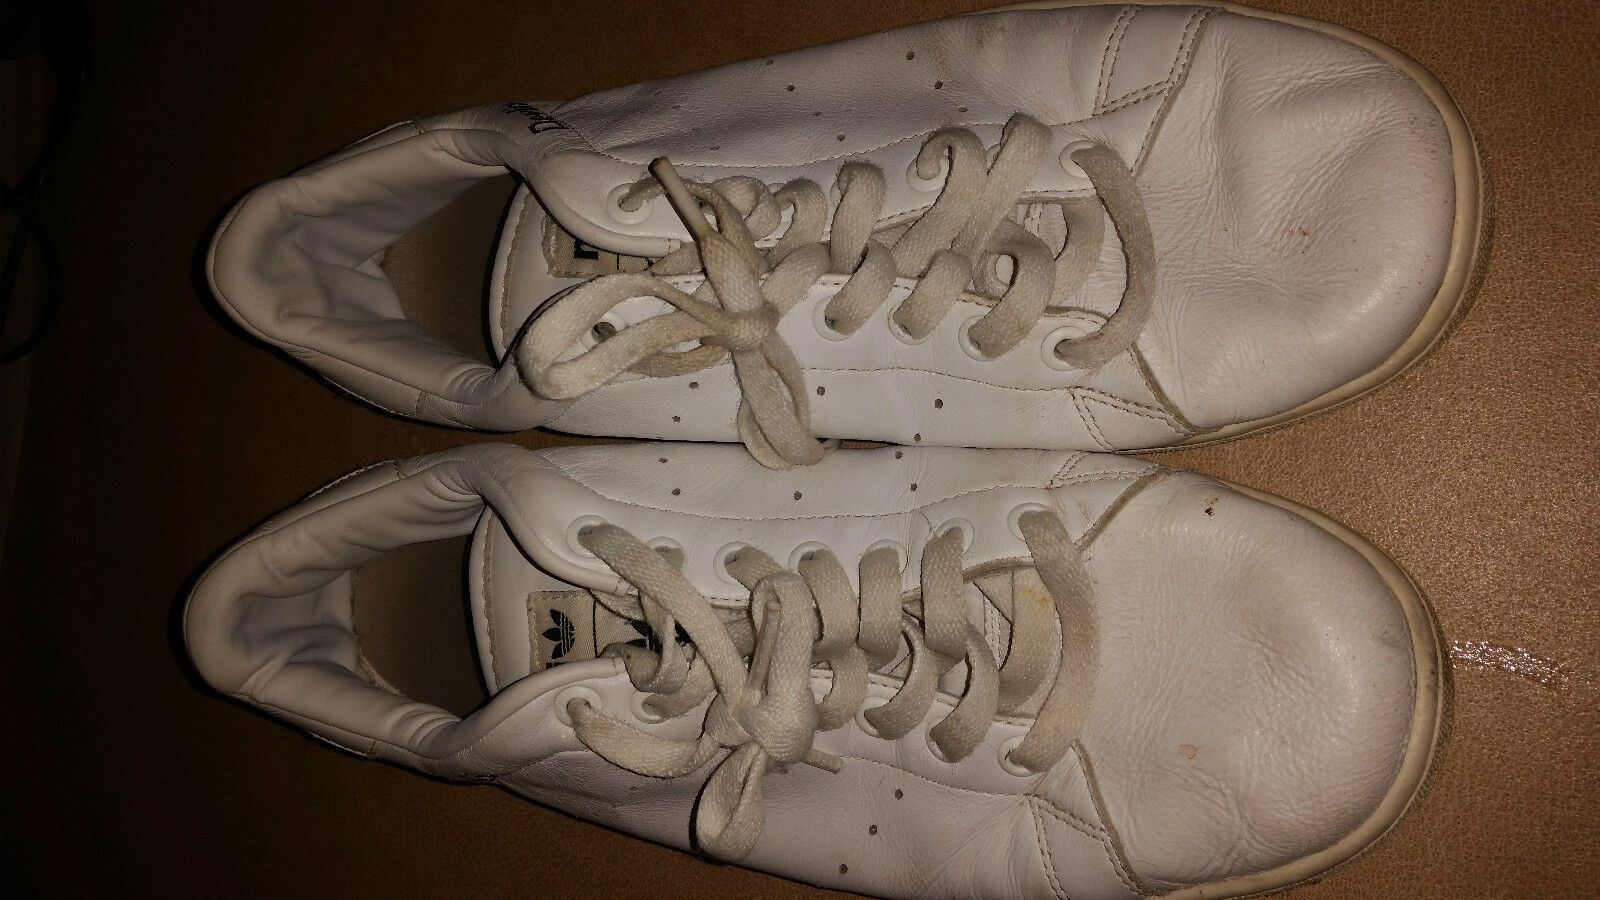 ADIDAS WHITE CLASSICS CUSTOM MADE  TRAINERS SIZE 10 UK DEVLIN best-selling model of the brand